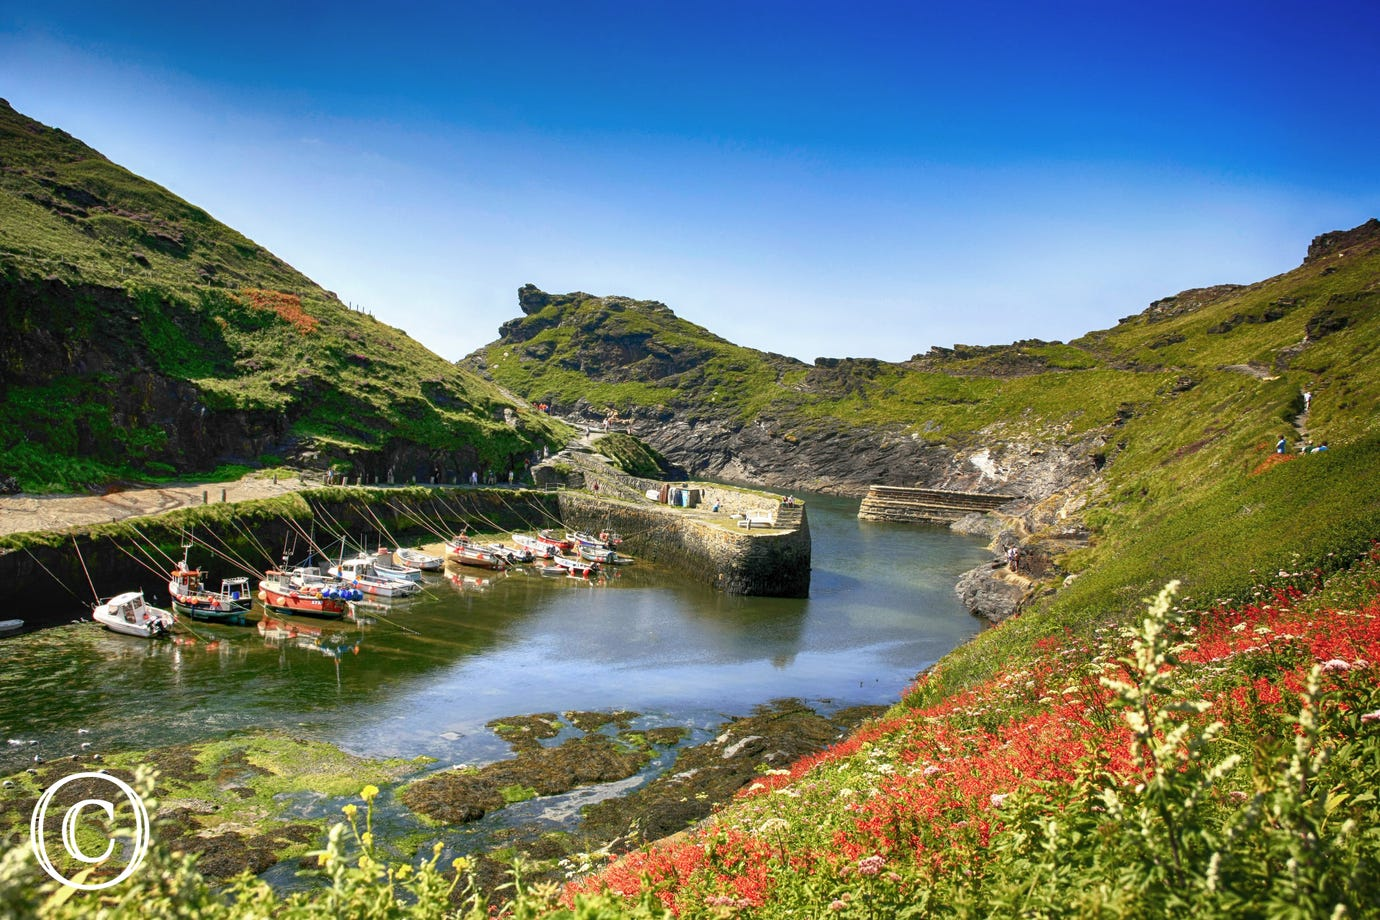 The idyllic village of Boscastle is only 6 miles away